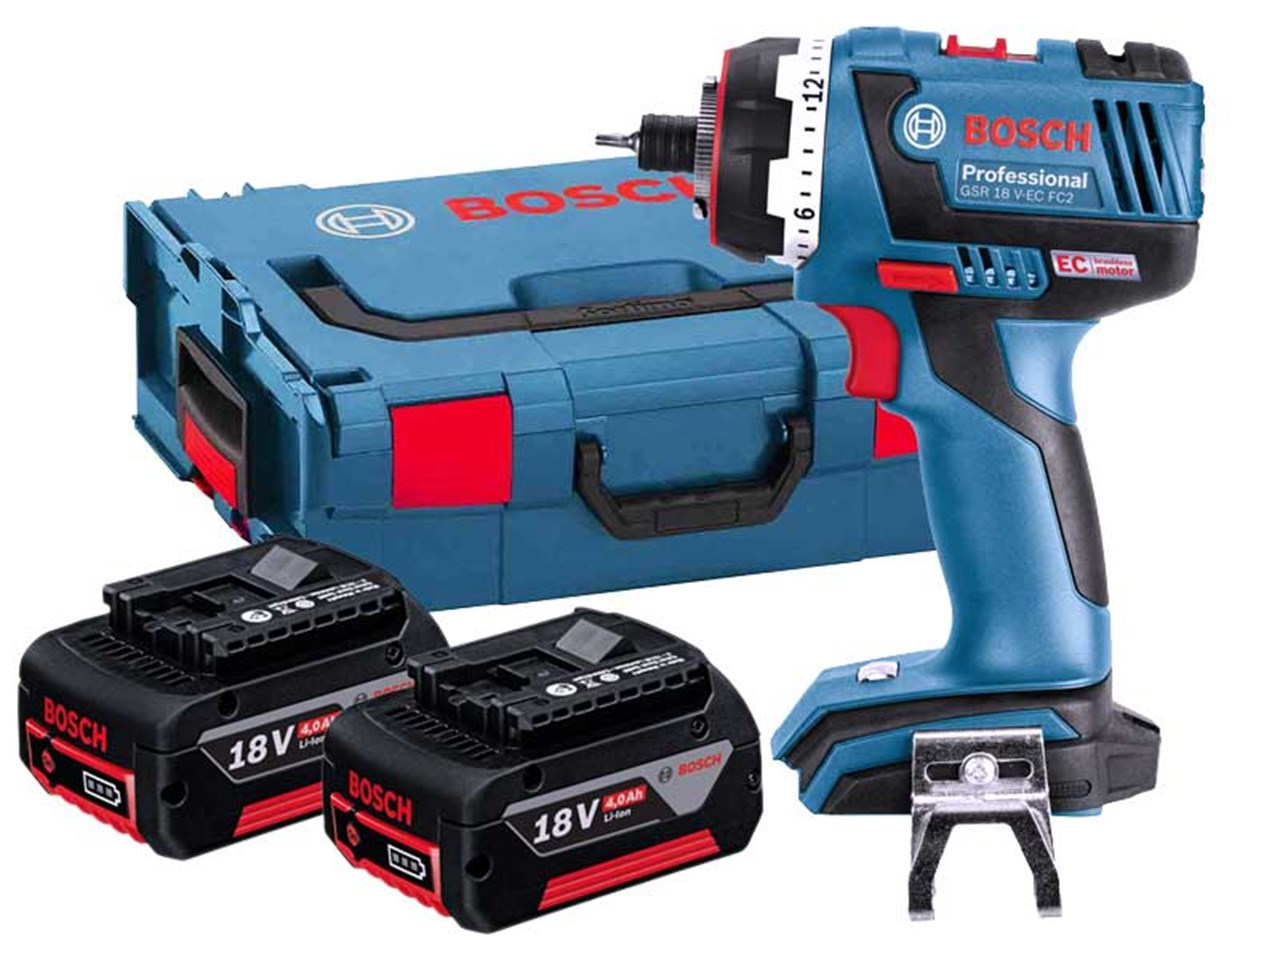 bosch gsr18vecfc2 18v cordless drill flexiclick 2 x 4 0ah li ion. Black Bedroom Furniture Sets. Home Design Ideas